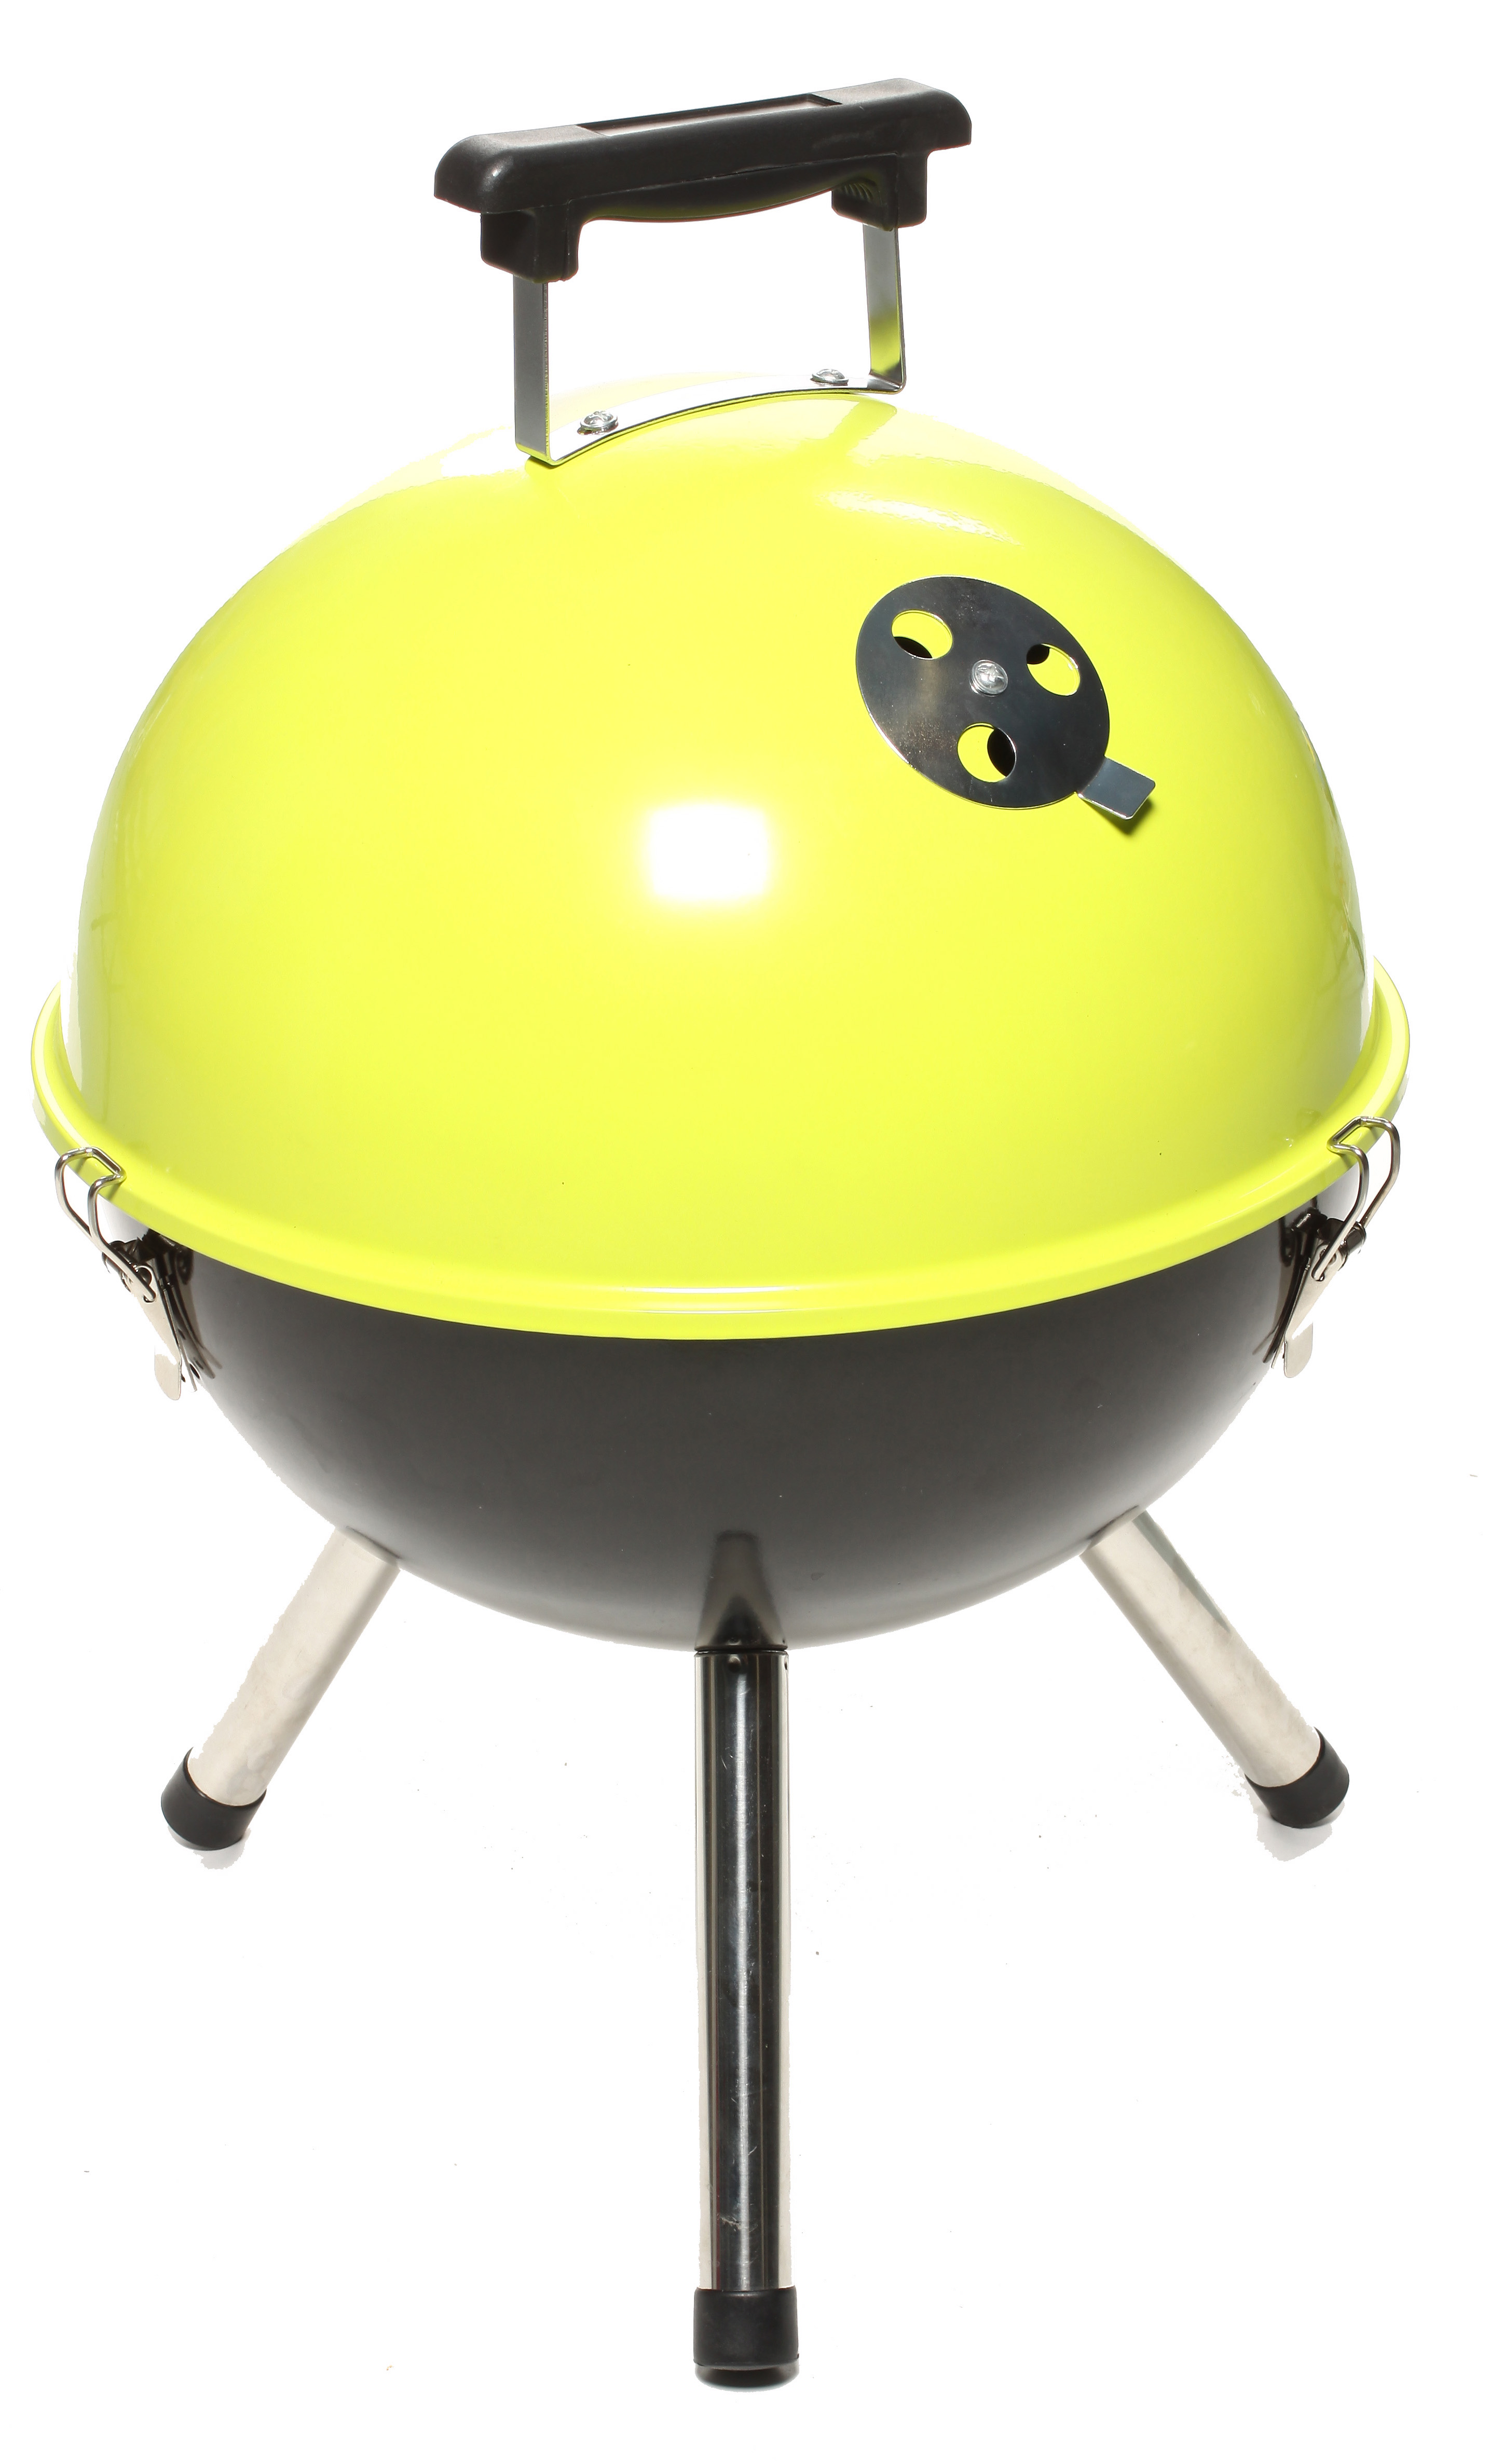 Barbecue soucoupe rendezvousdeco